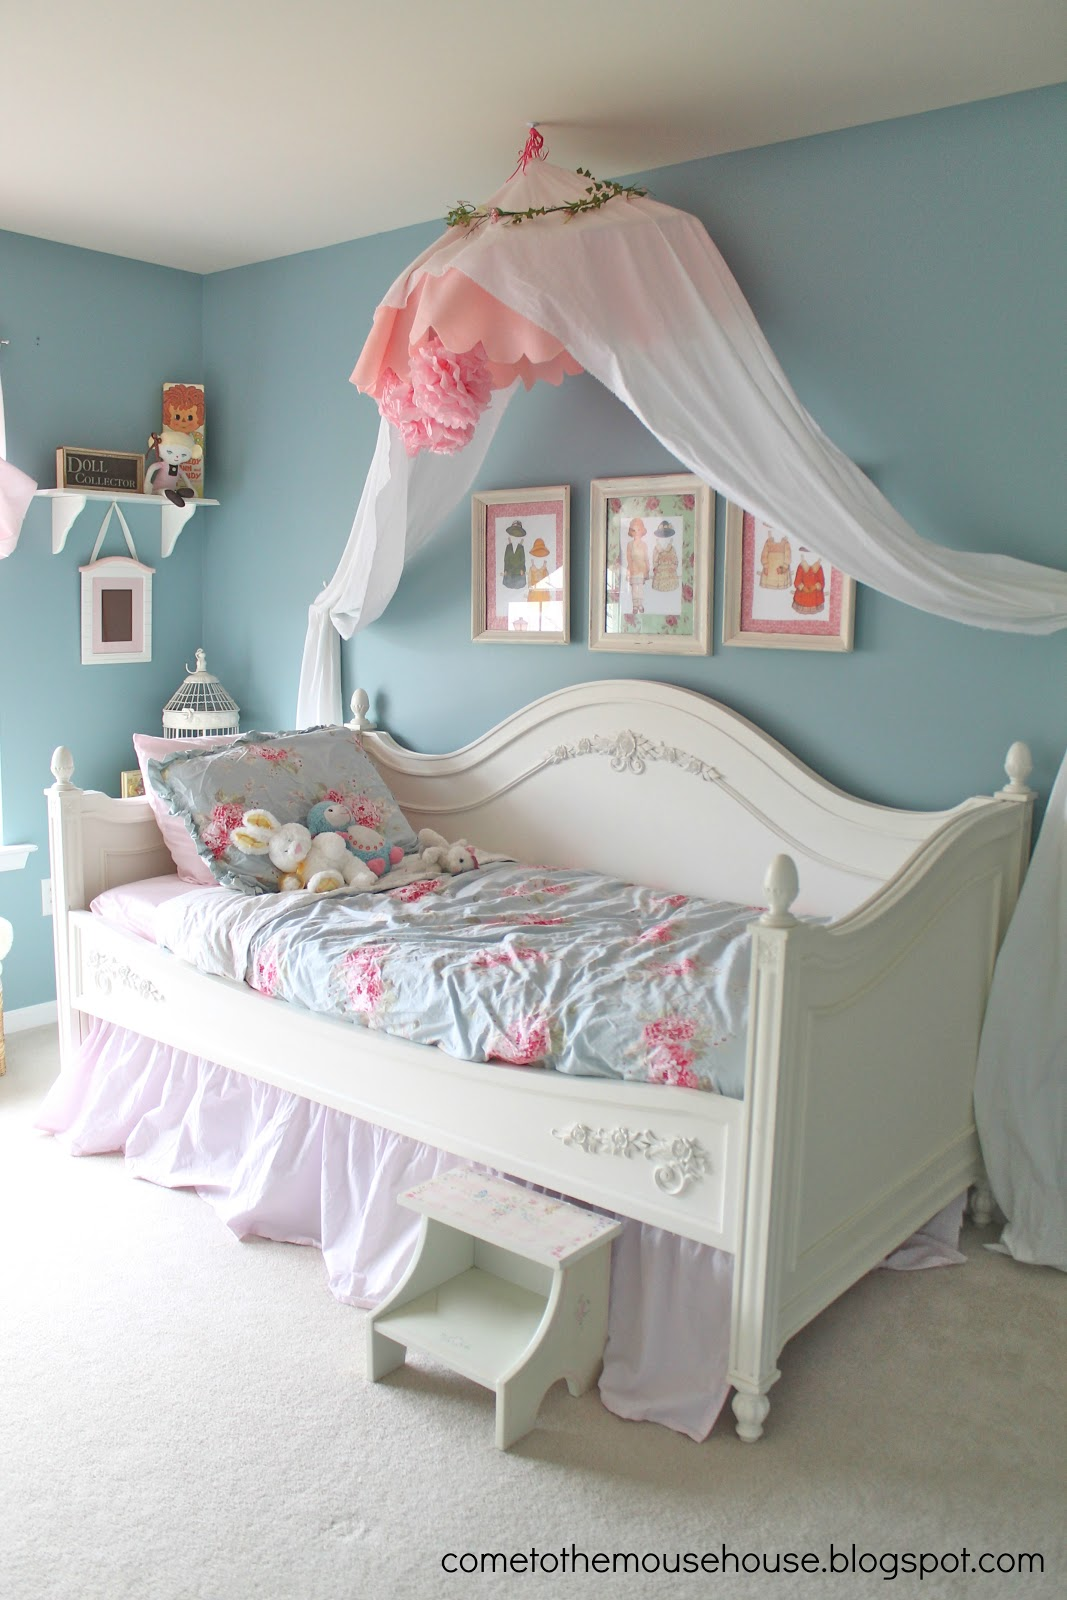 Shabby Chic Bedroom: Reveal! - welcometothemousehouse.com